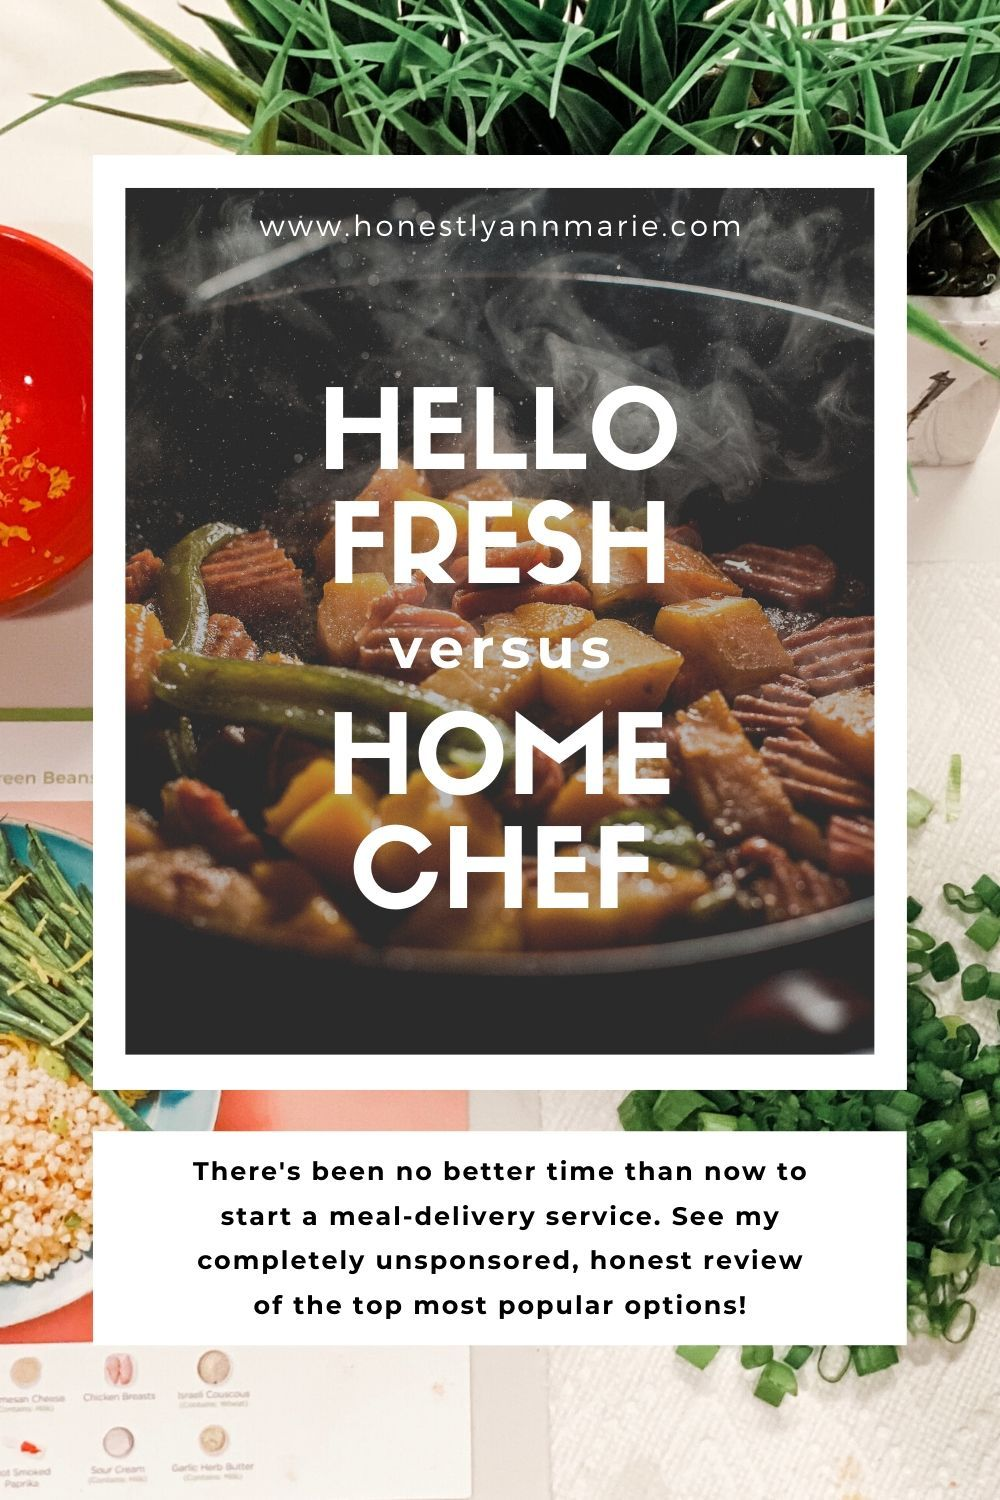 There's been no better time than now to start a meal-delivery service. See my completely unsponsored, honest review of the top most popular options: Hello Fresh and Home Chef! meal delivery comparison, home chef, hello fresh, best meal delivery, easy meals